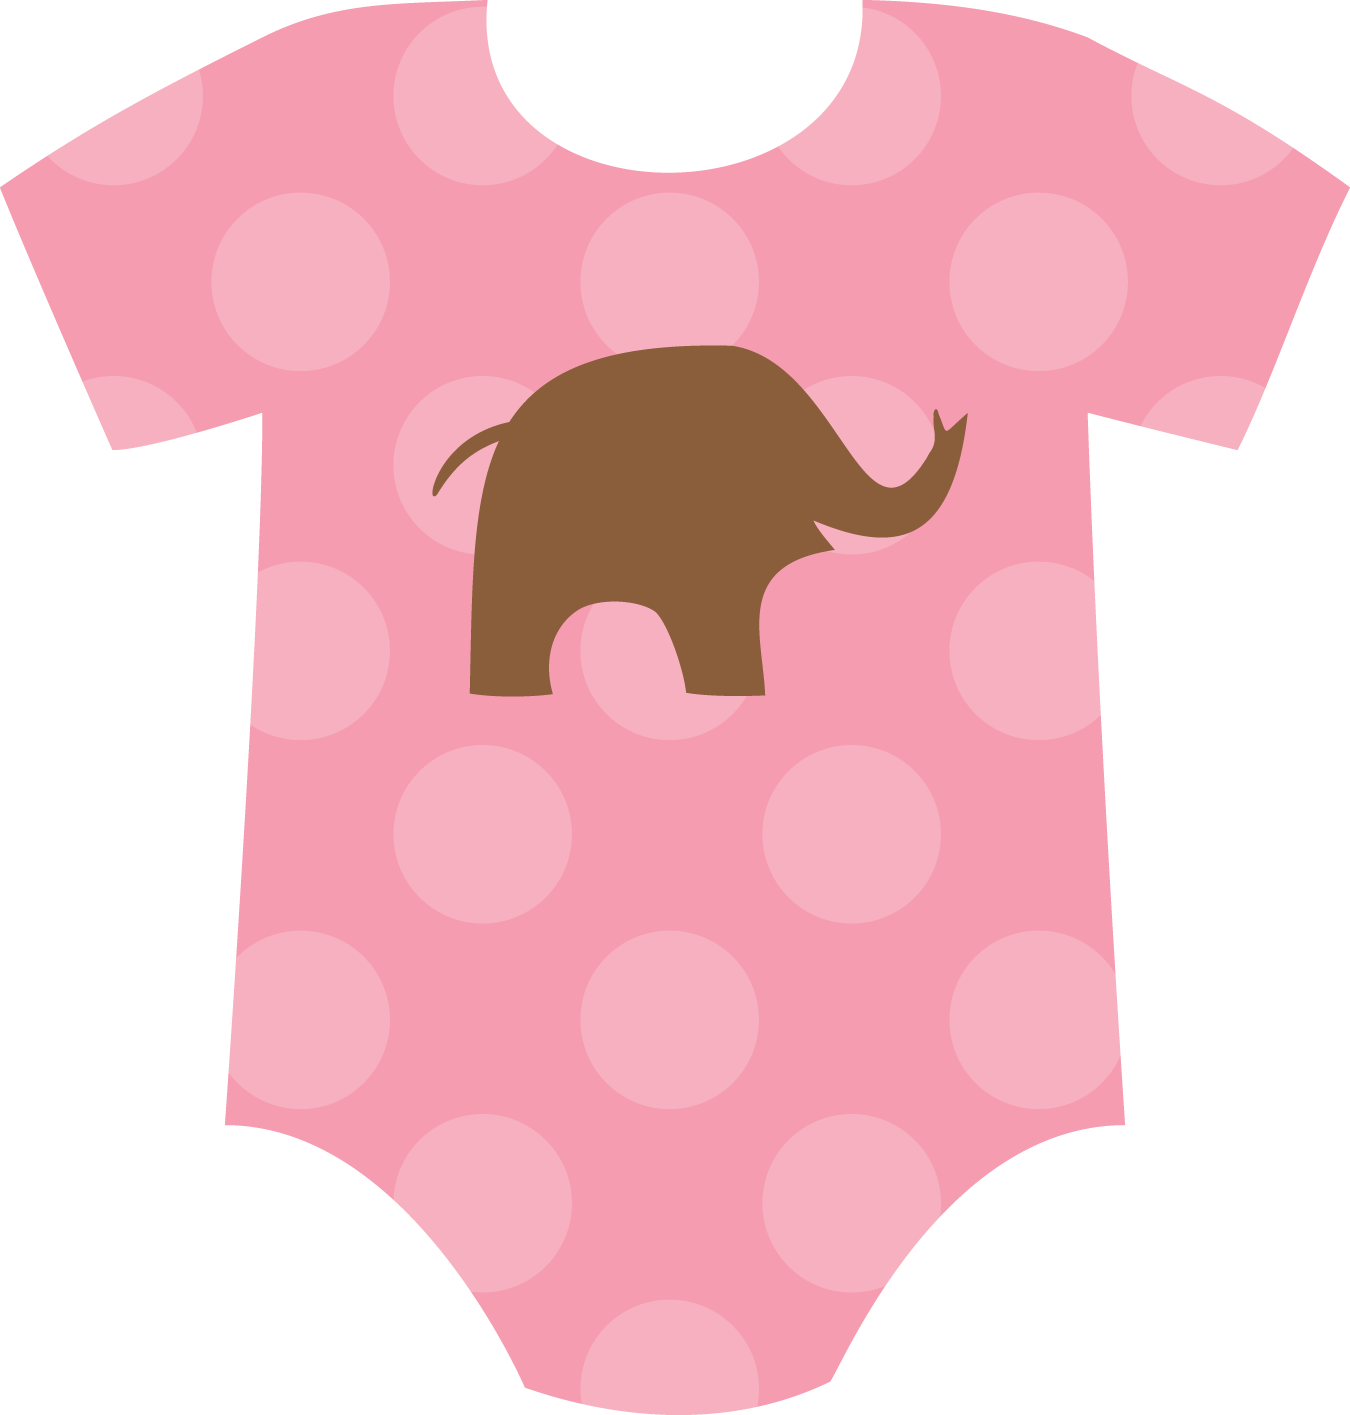 baby onesies clipart she s crafty pinterest onesie onesies rh pinterest com au baby onesie clipart free baby boy onesie clipart